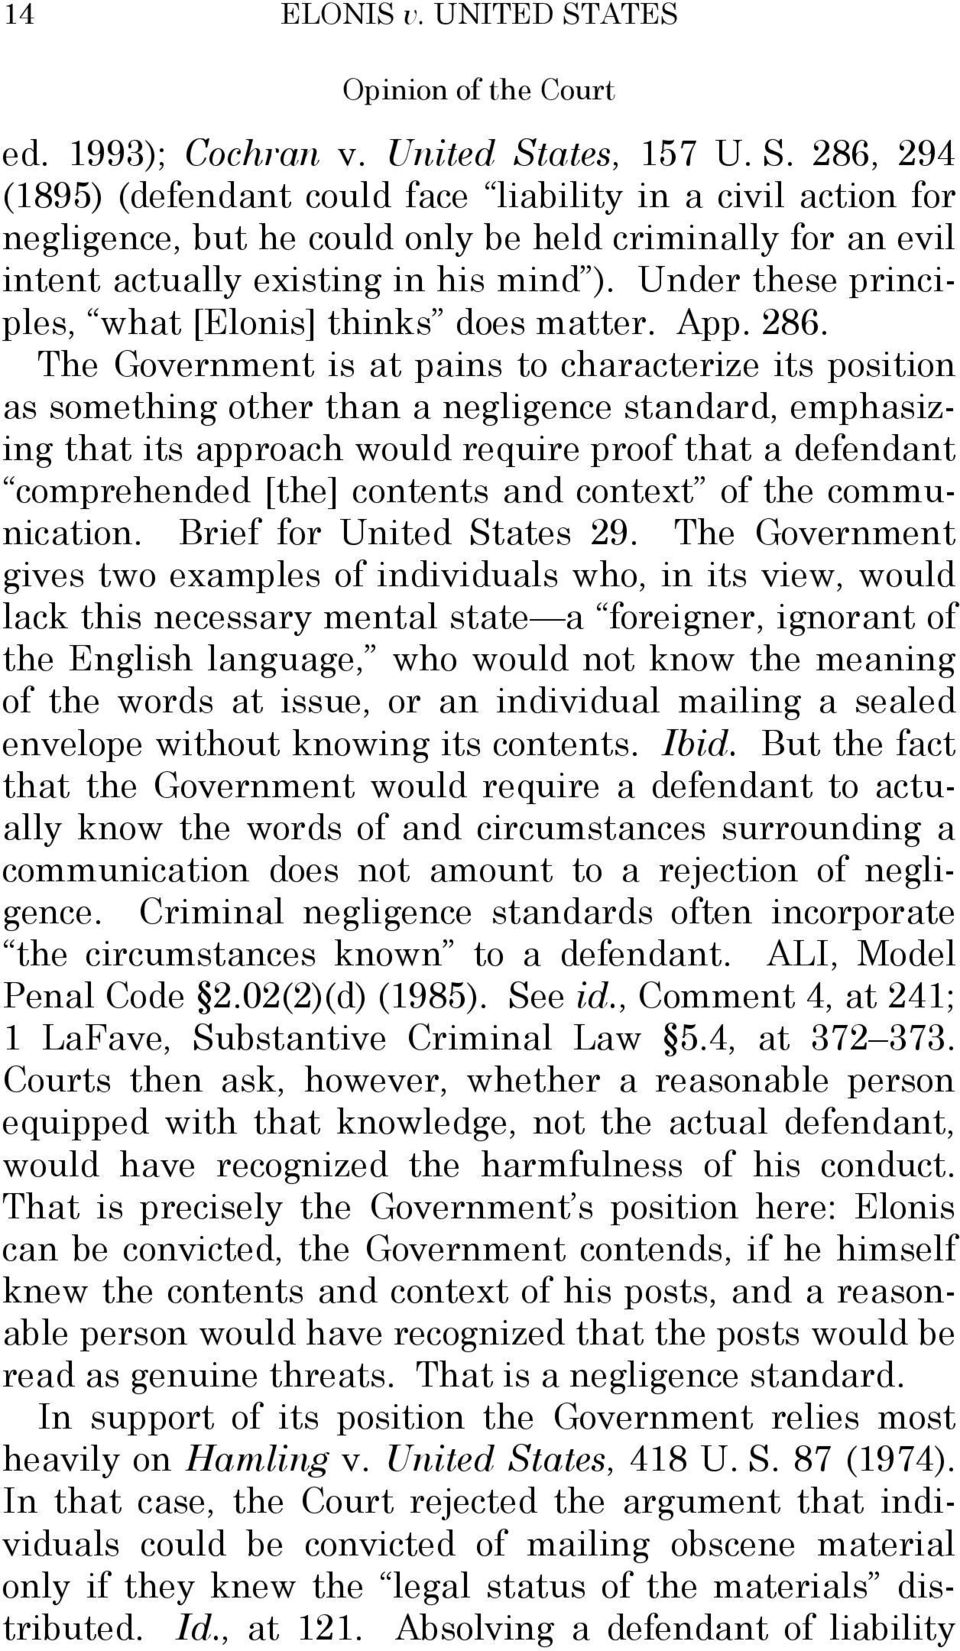 The Government is at pains to characterize its position as something other than a negligence standard, emphasizing that its approach would require proof that a defendant comprehended [the] contents